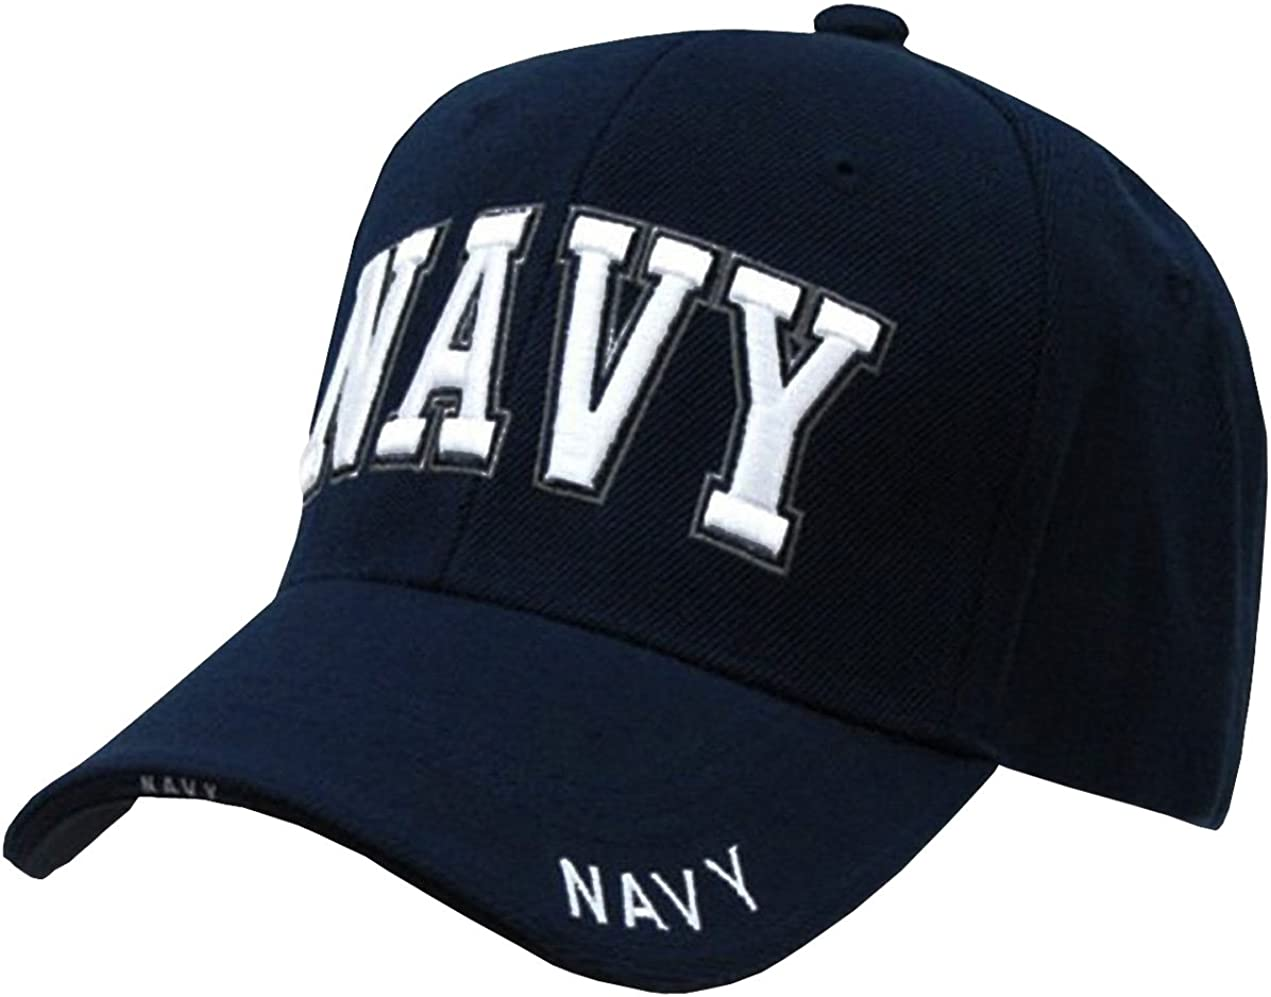 Rapid Dominance US Navy Text Embroidered High Crown Military Baseball Cap Hat